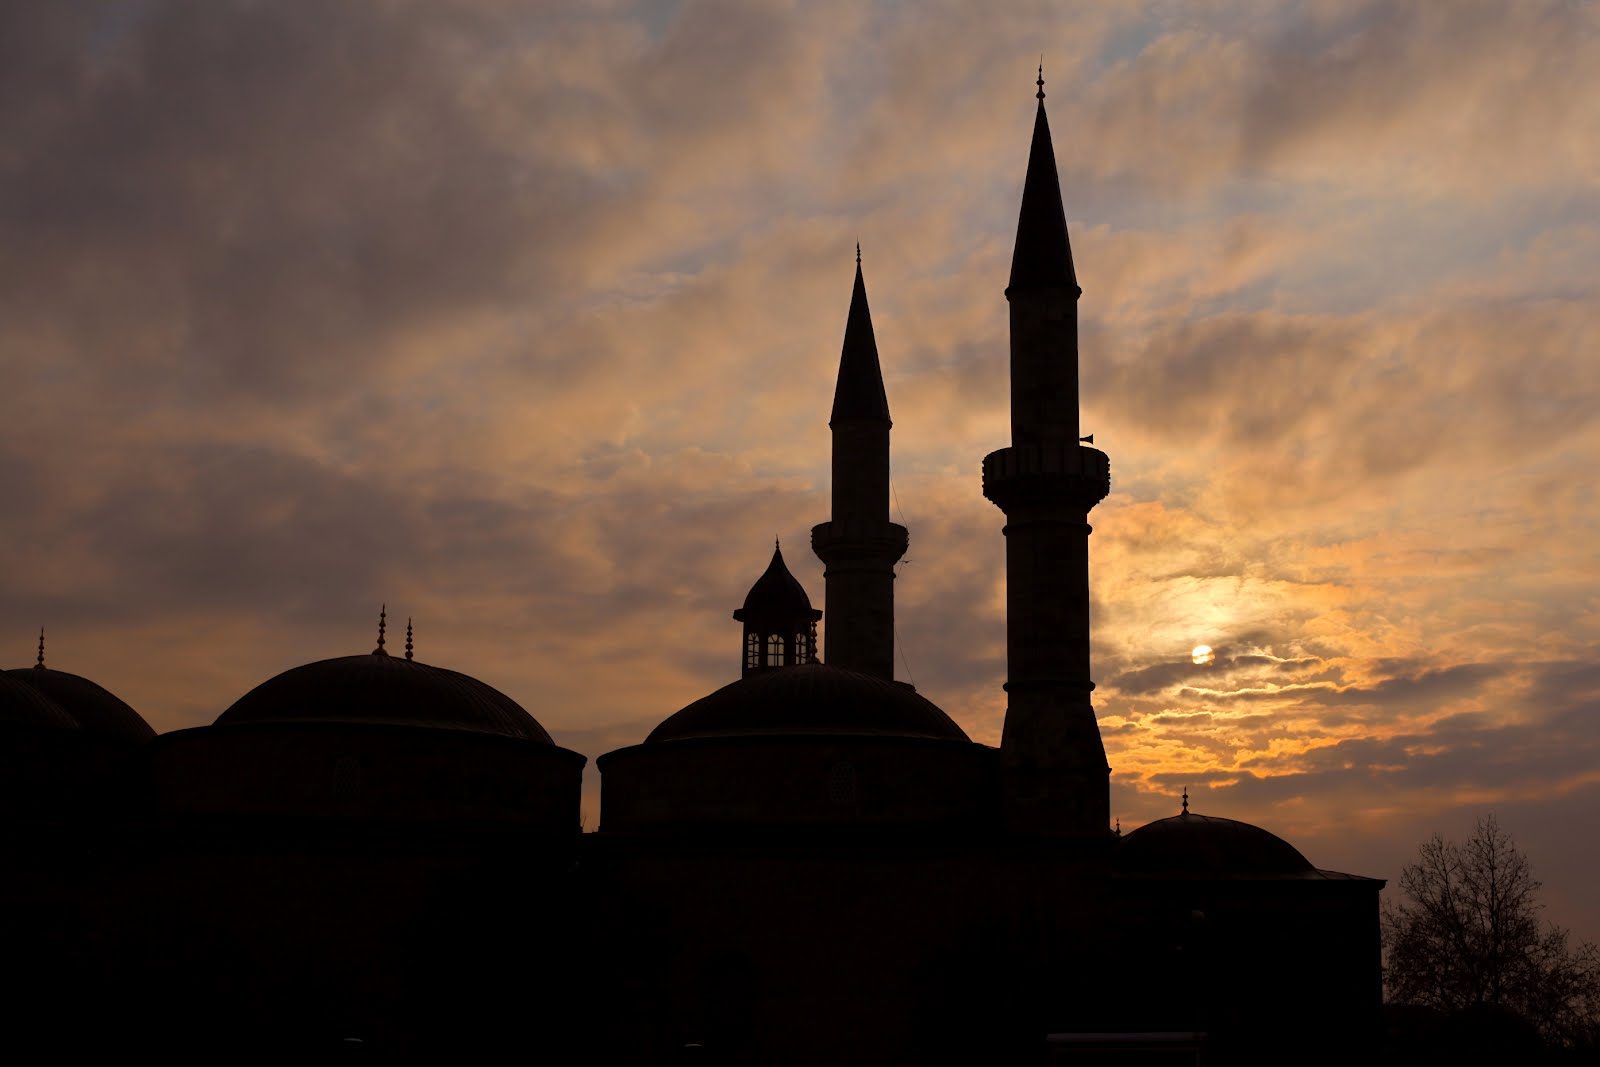 The World's Best Photos of edirne and turkey - Flickr Hive Mind